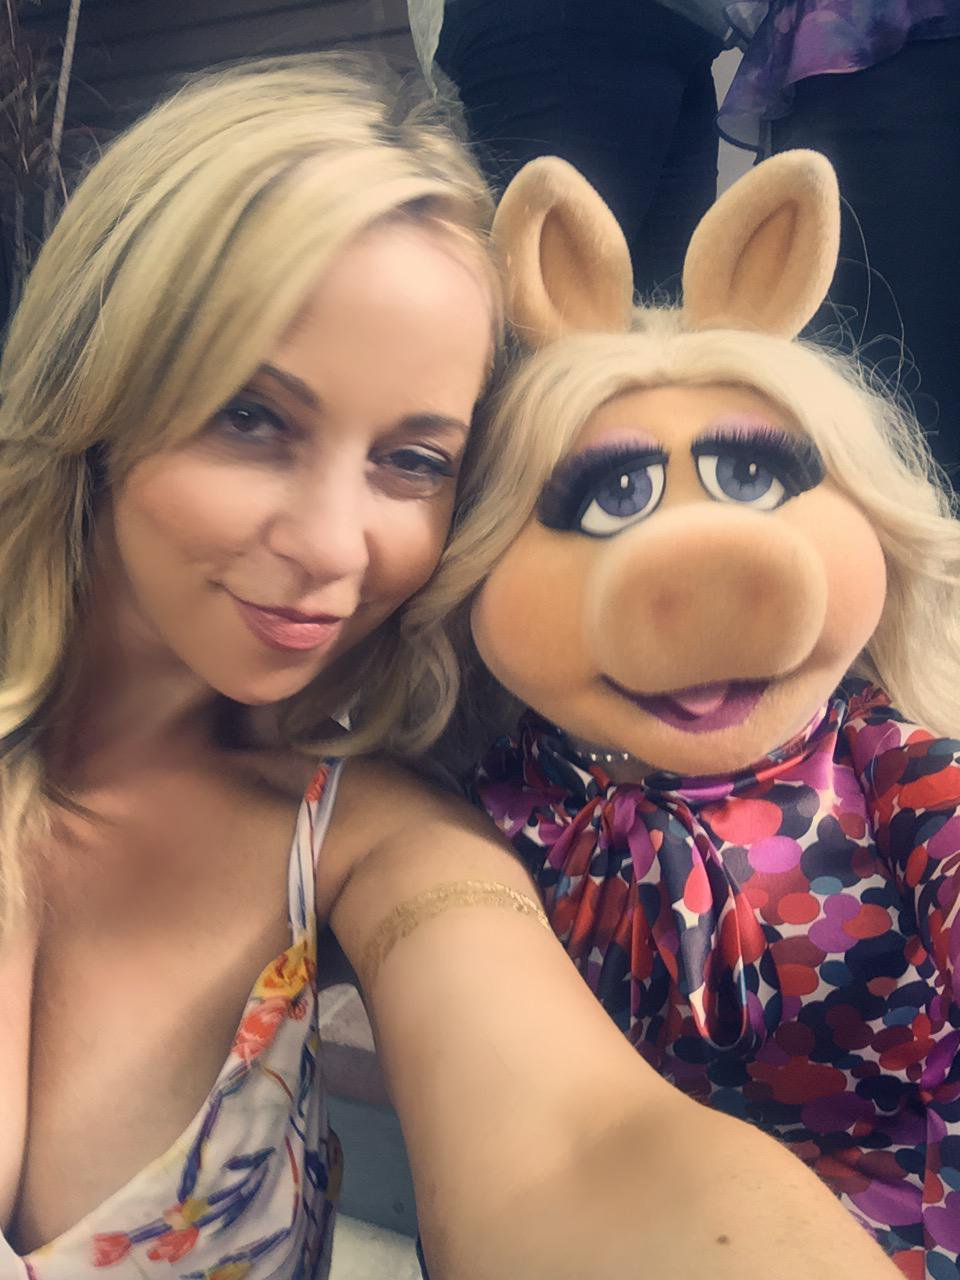 pictures Tara Strong